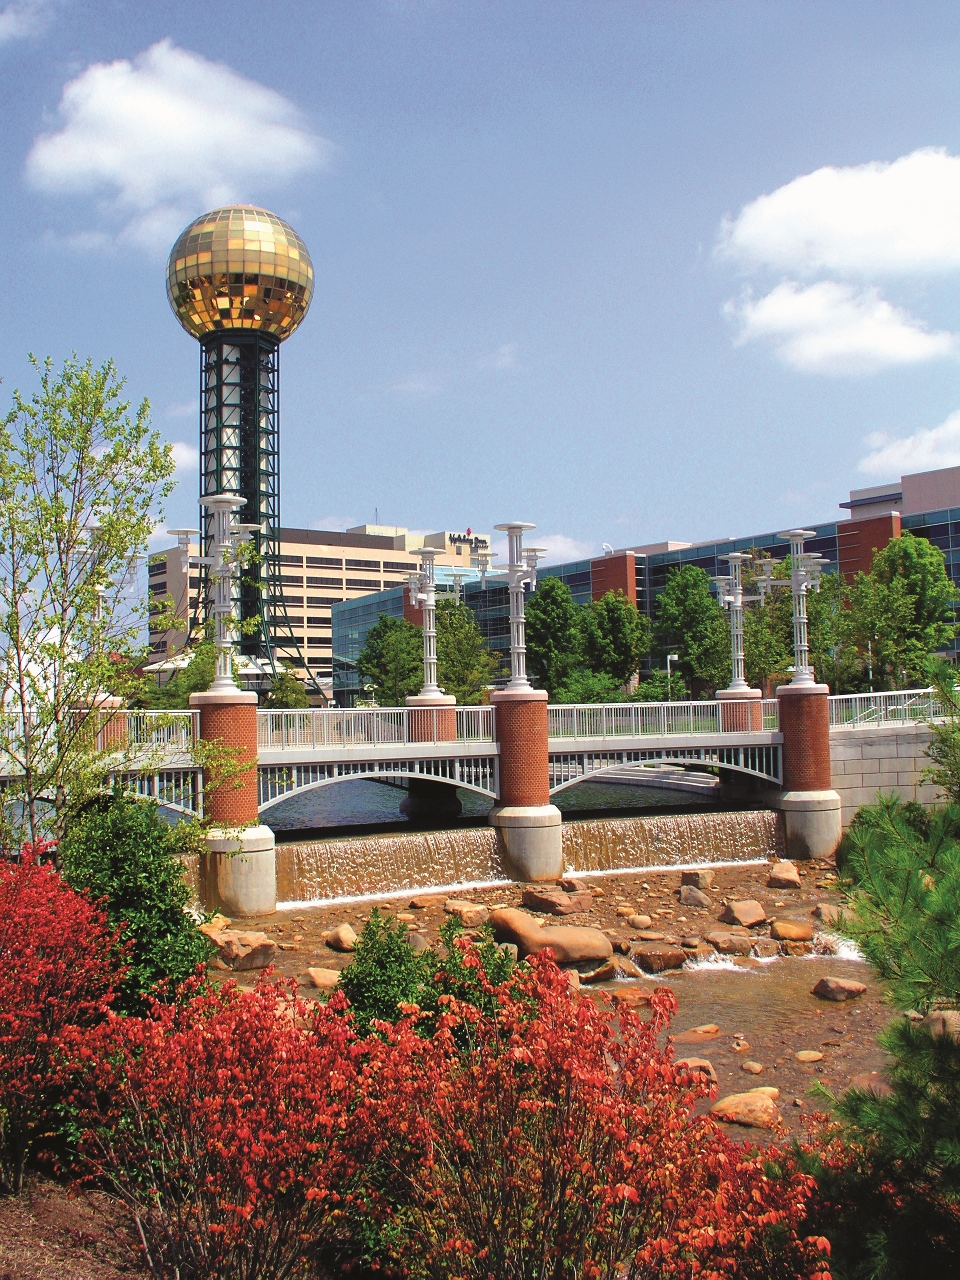 Knoxville Tn Area Hotels